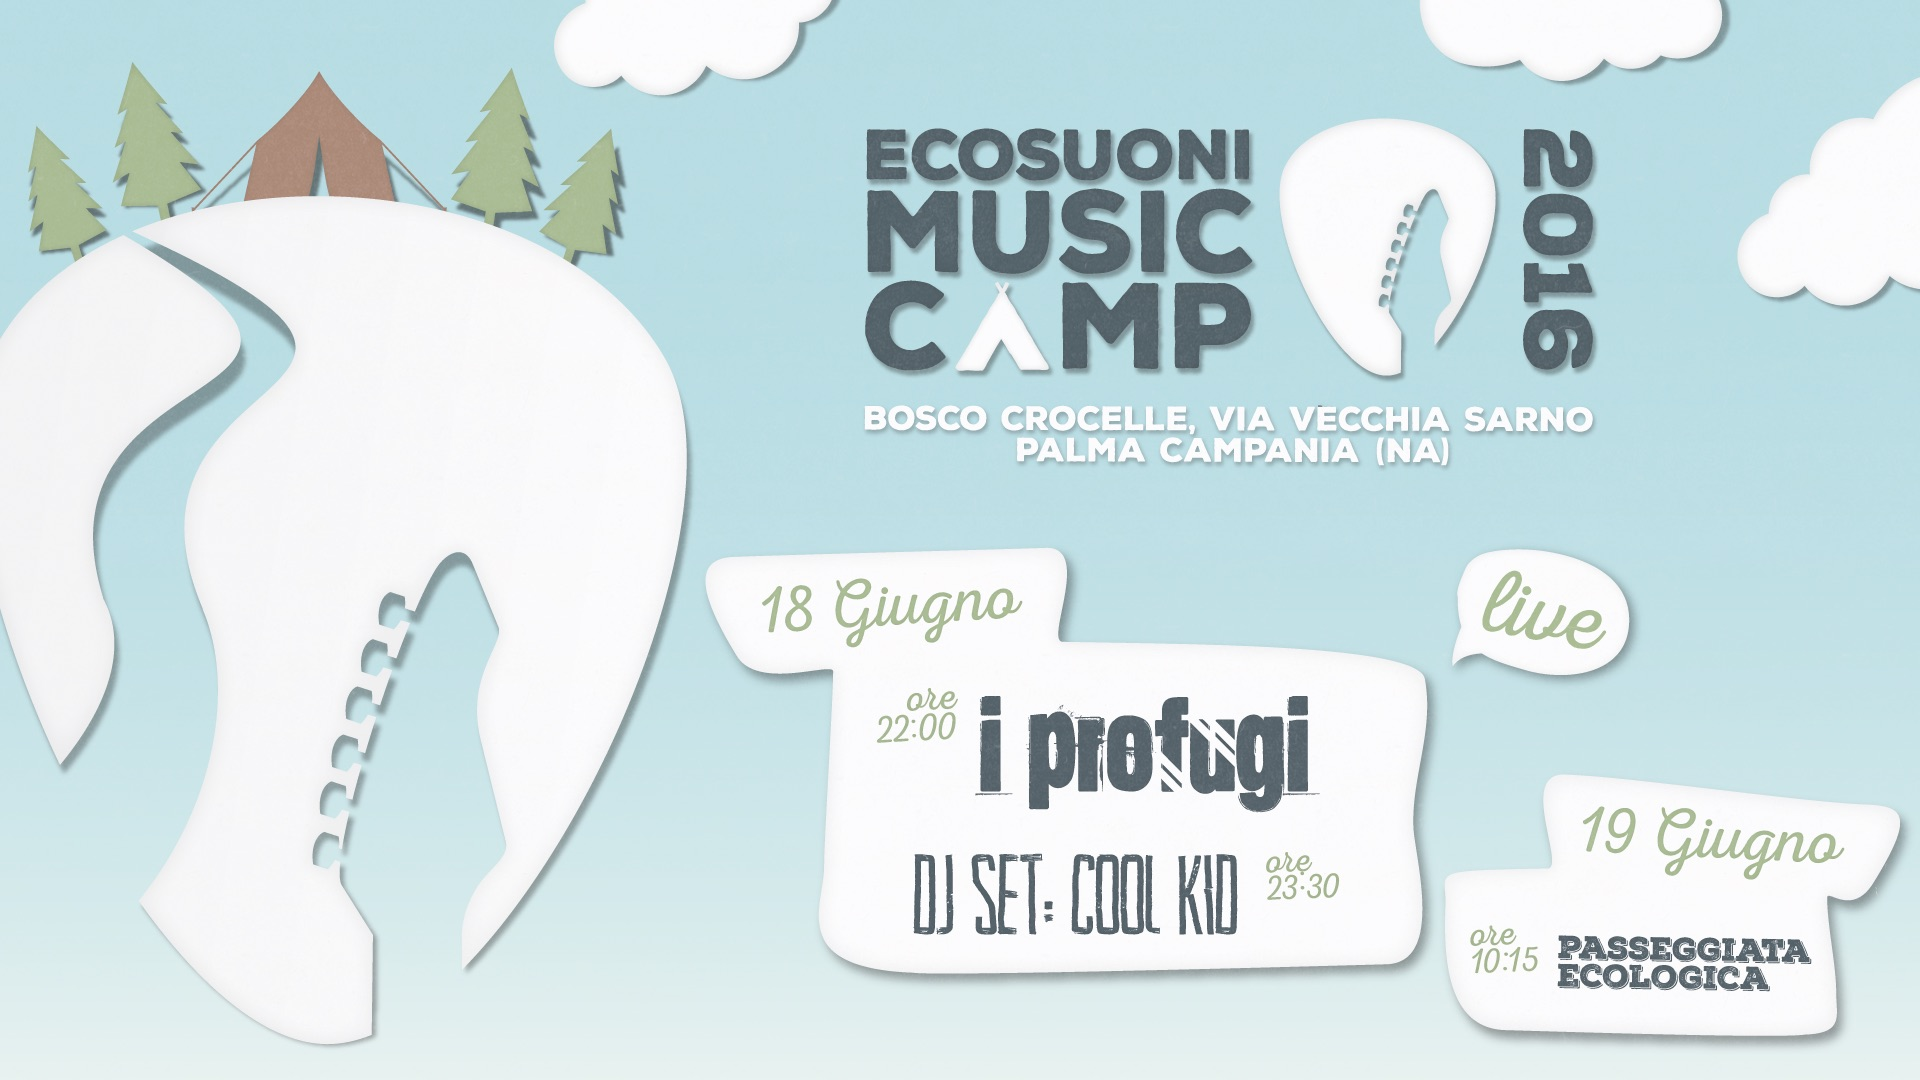 Ecosuoni Music Camp 2016